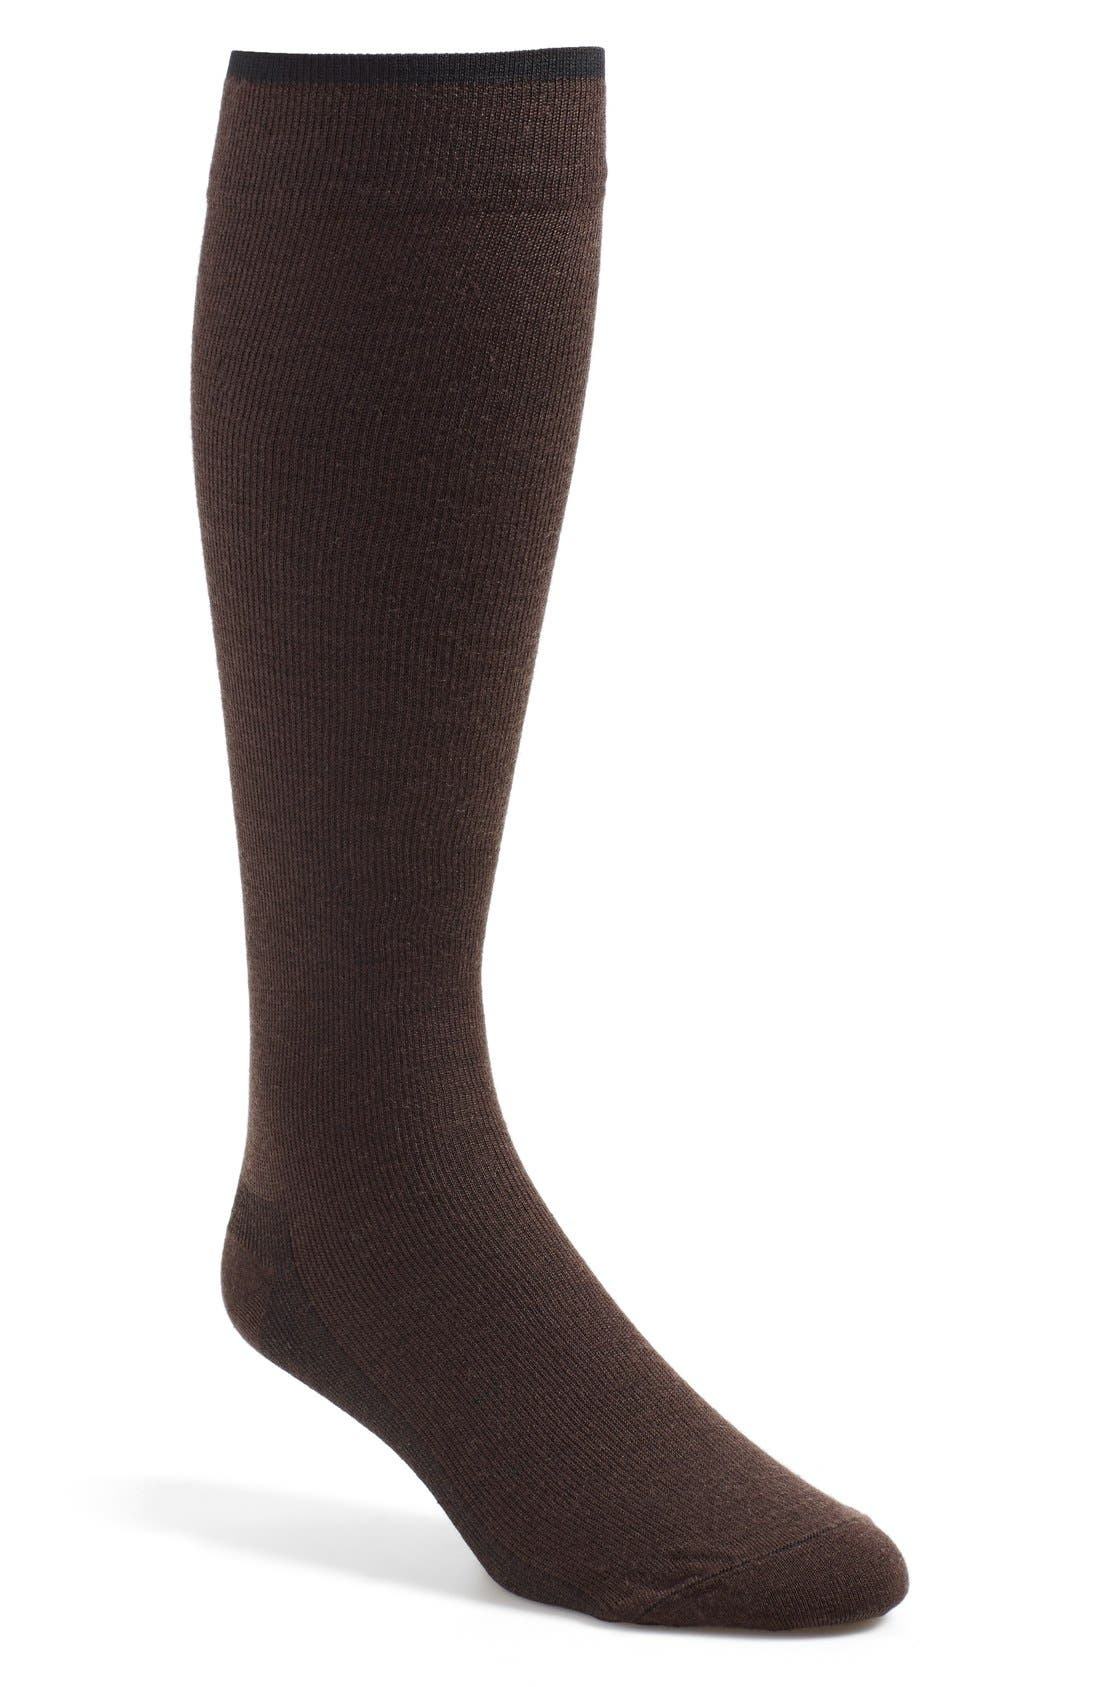 INSIGNIA BY SIGVARIS 'Venturist' Over theCalf Socks